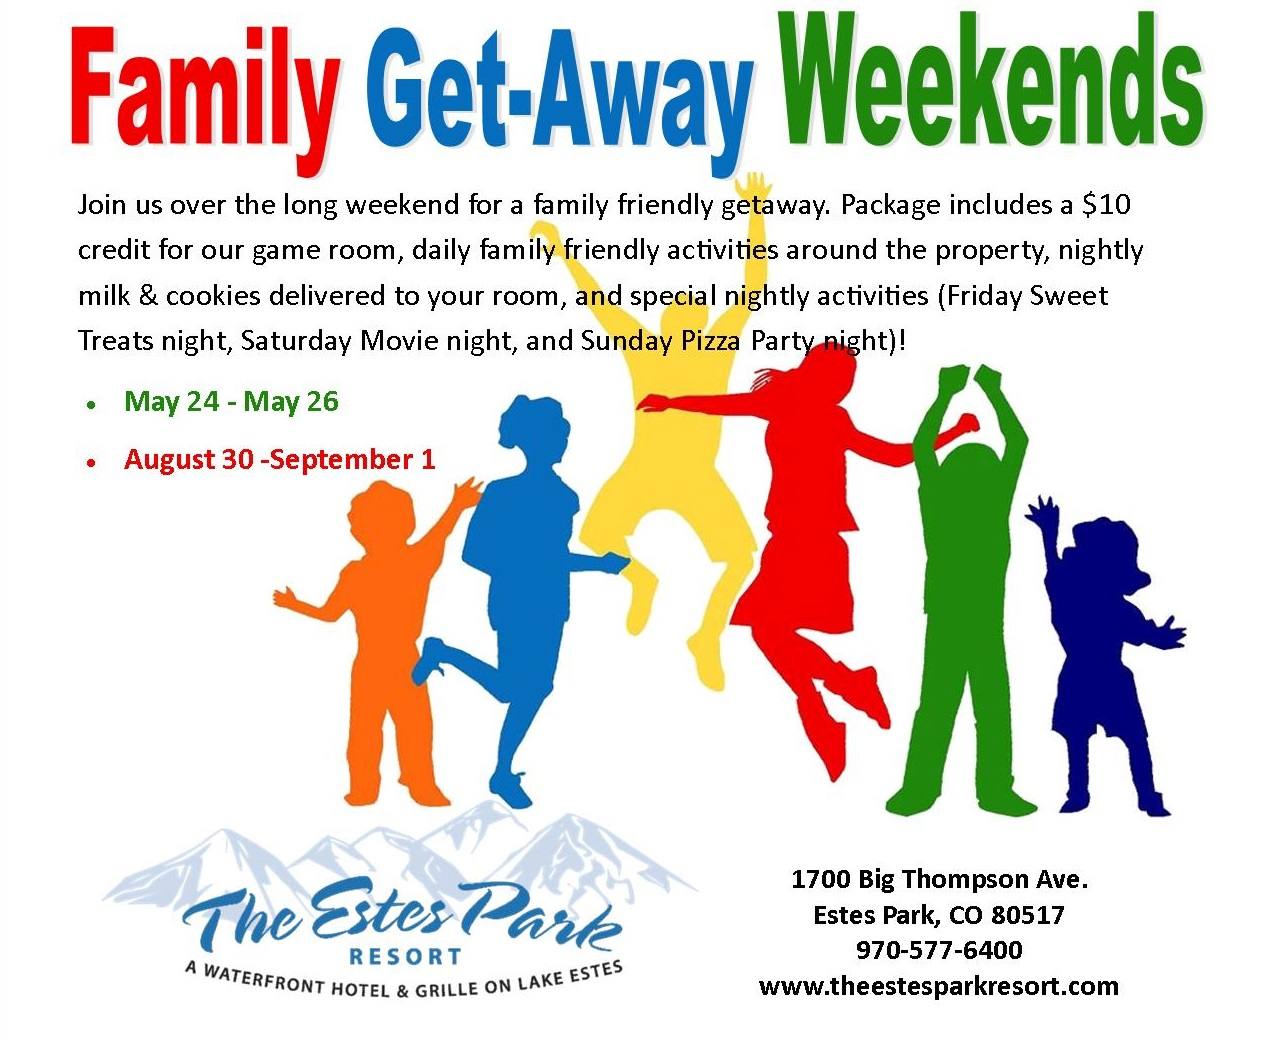 Movie Park Coupon Family Get Away Weekends Estes Park Co 80517